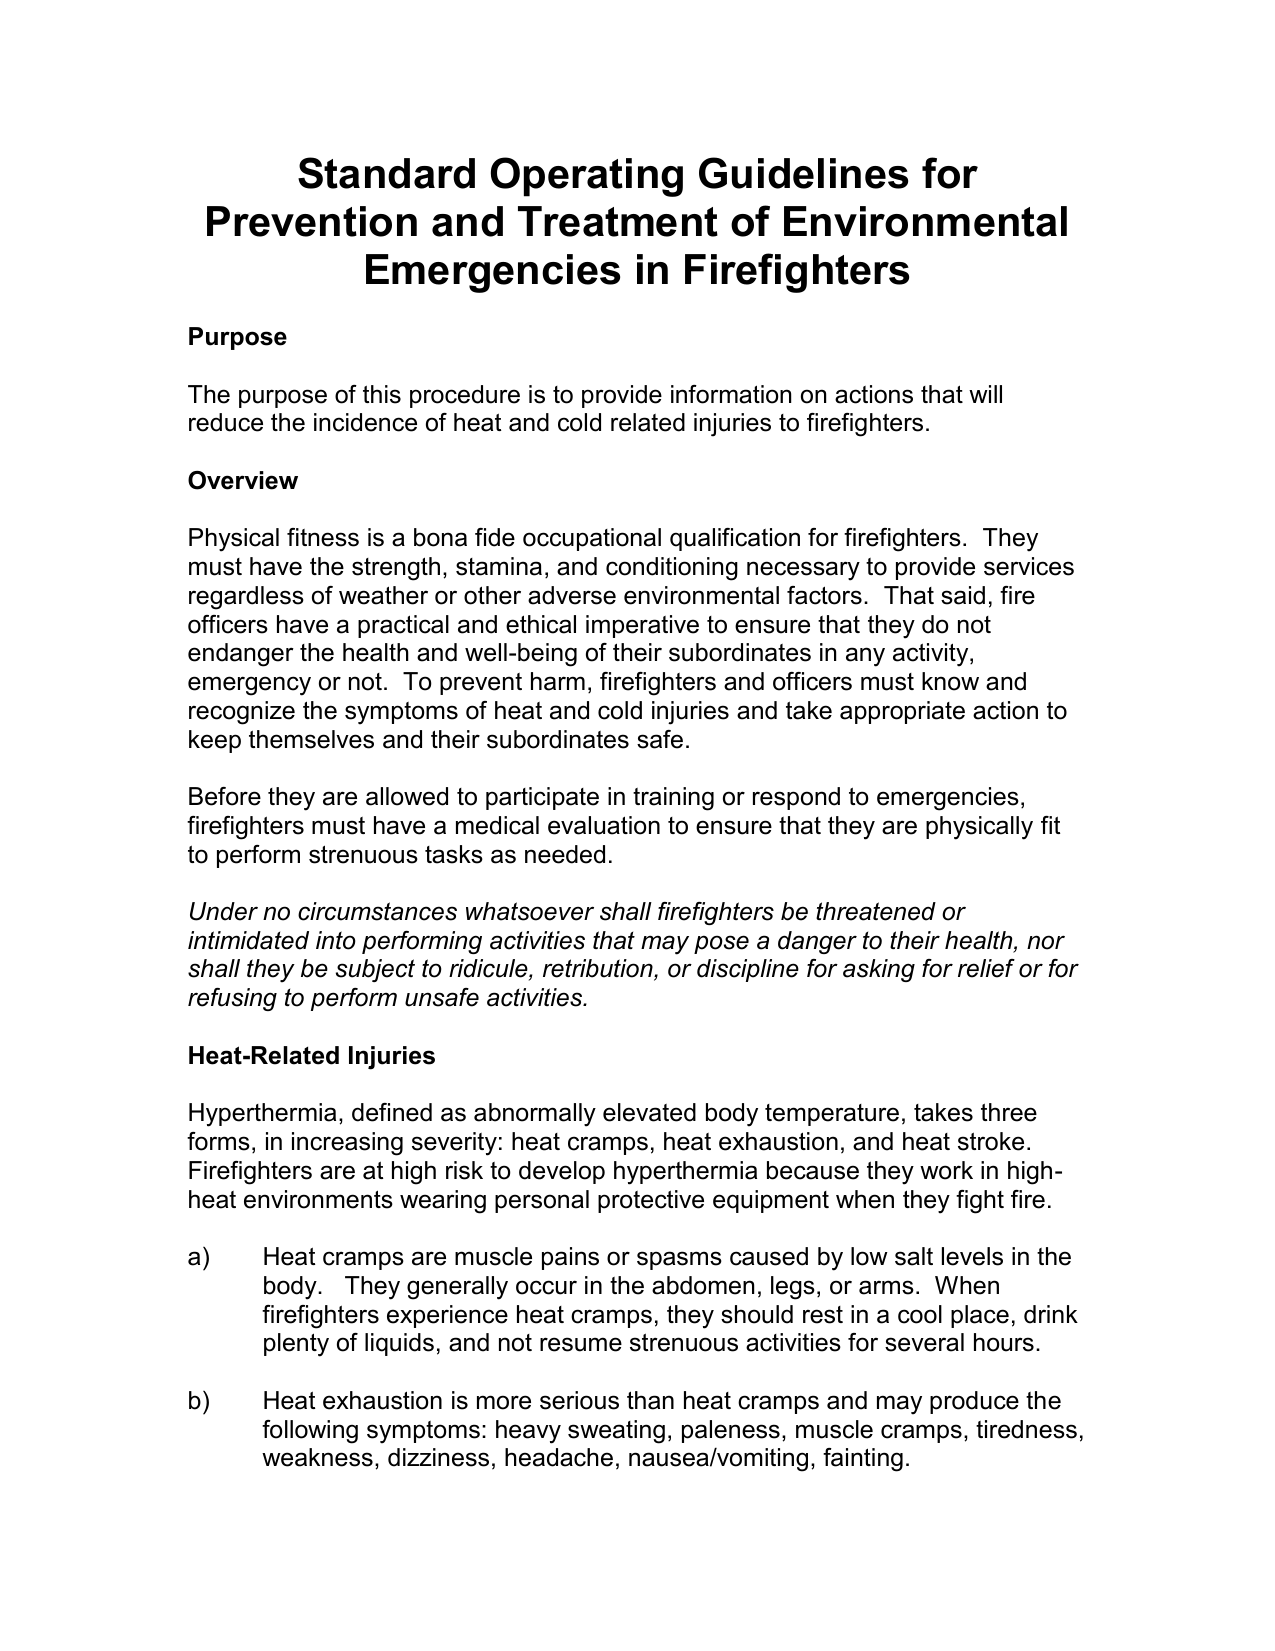 Standard Operating Guidelines for Prevention and Treatment